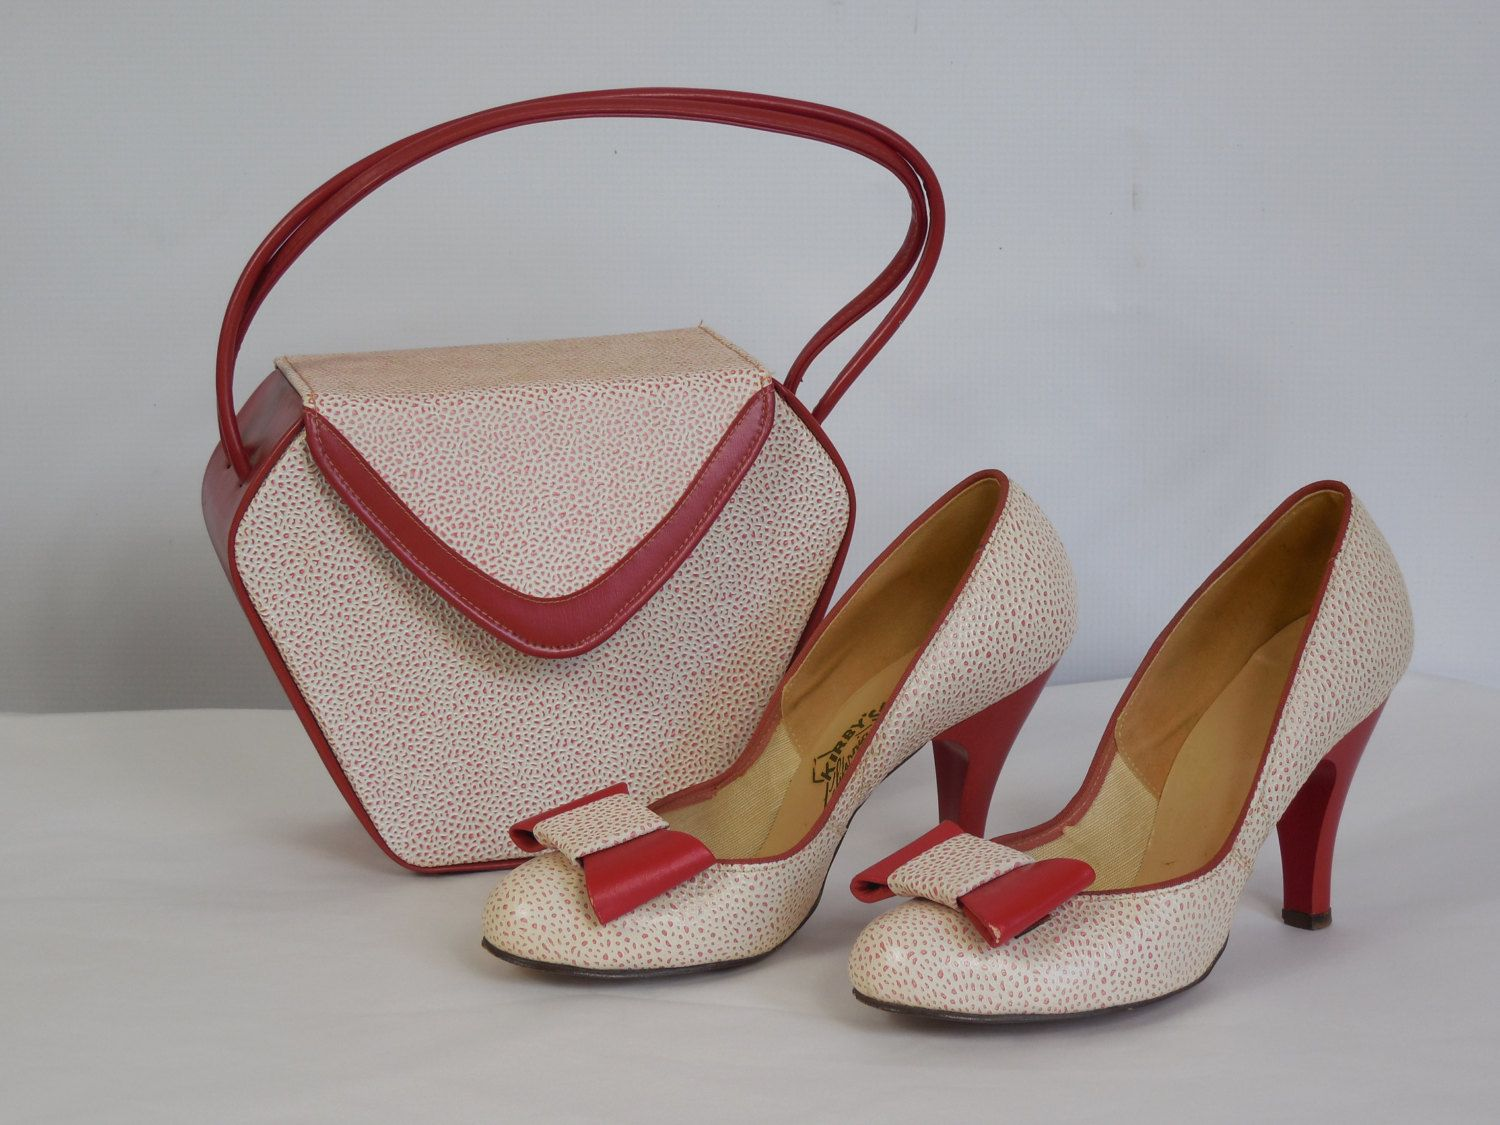 ae4824c75832 1950 s Vintage Kirby s California Fashions Red and White Heel Pump Shoes  Size 6 with Matching Box Purse